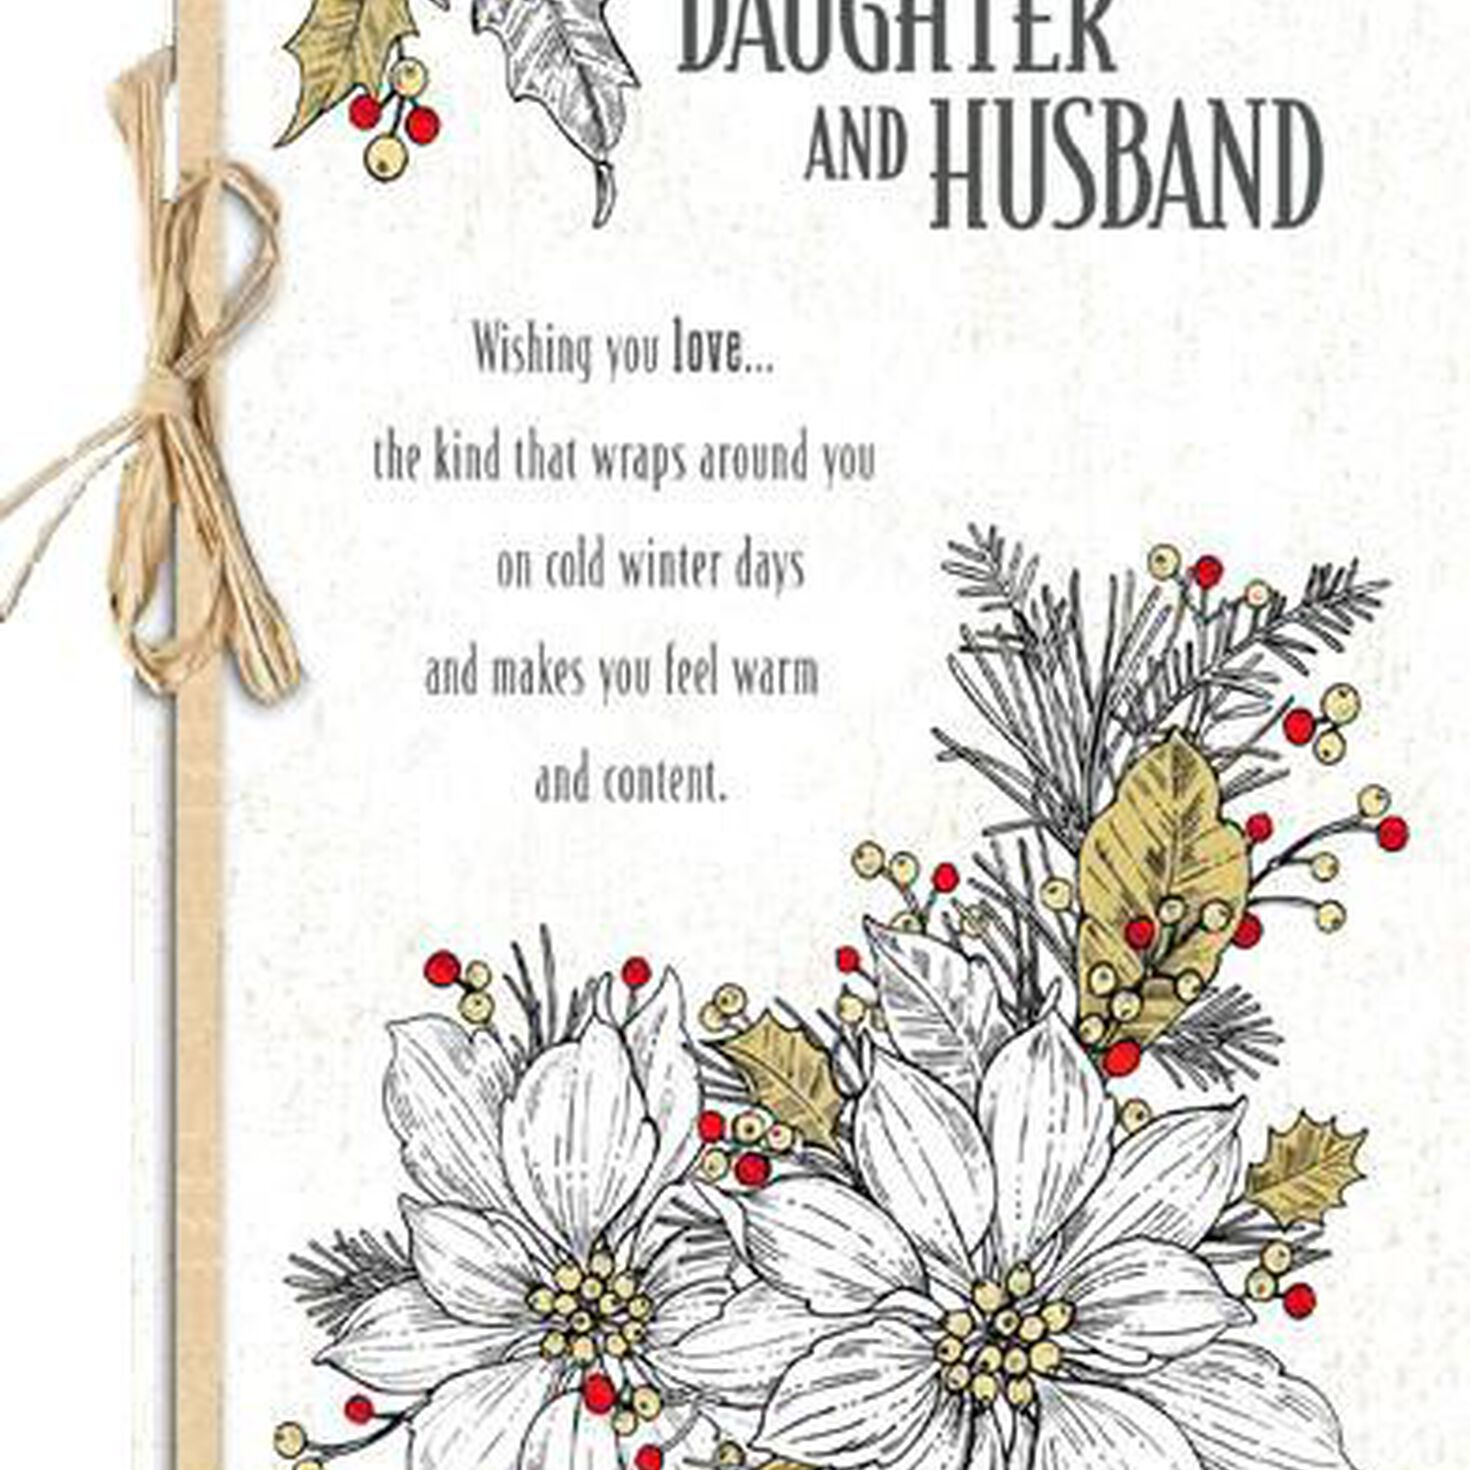 Christmas Wishes For Daughter And Her Husband